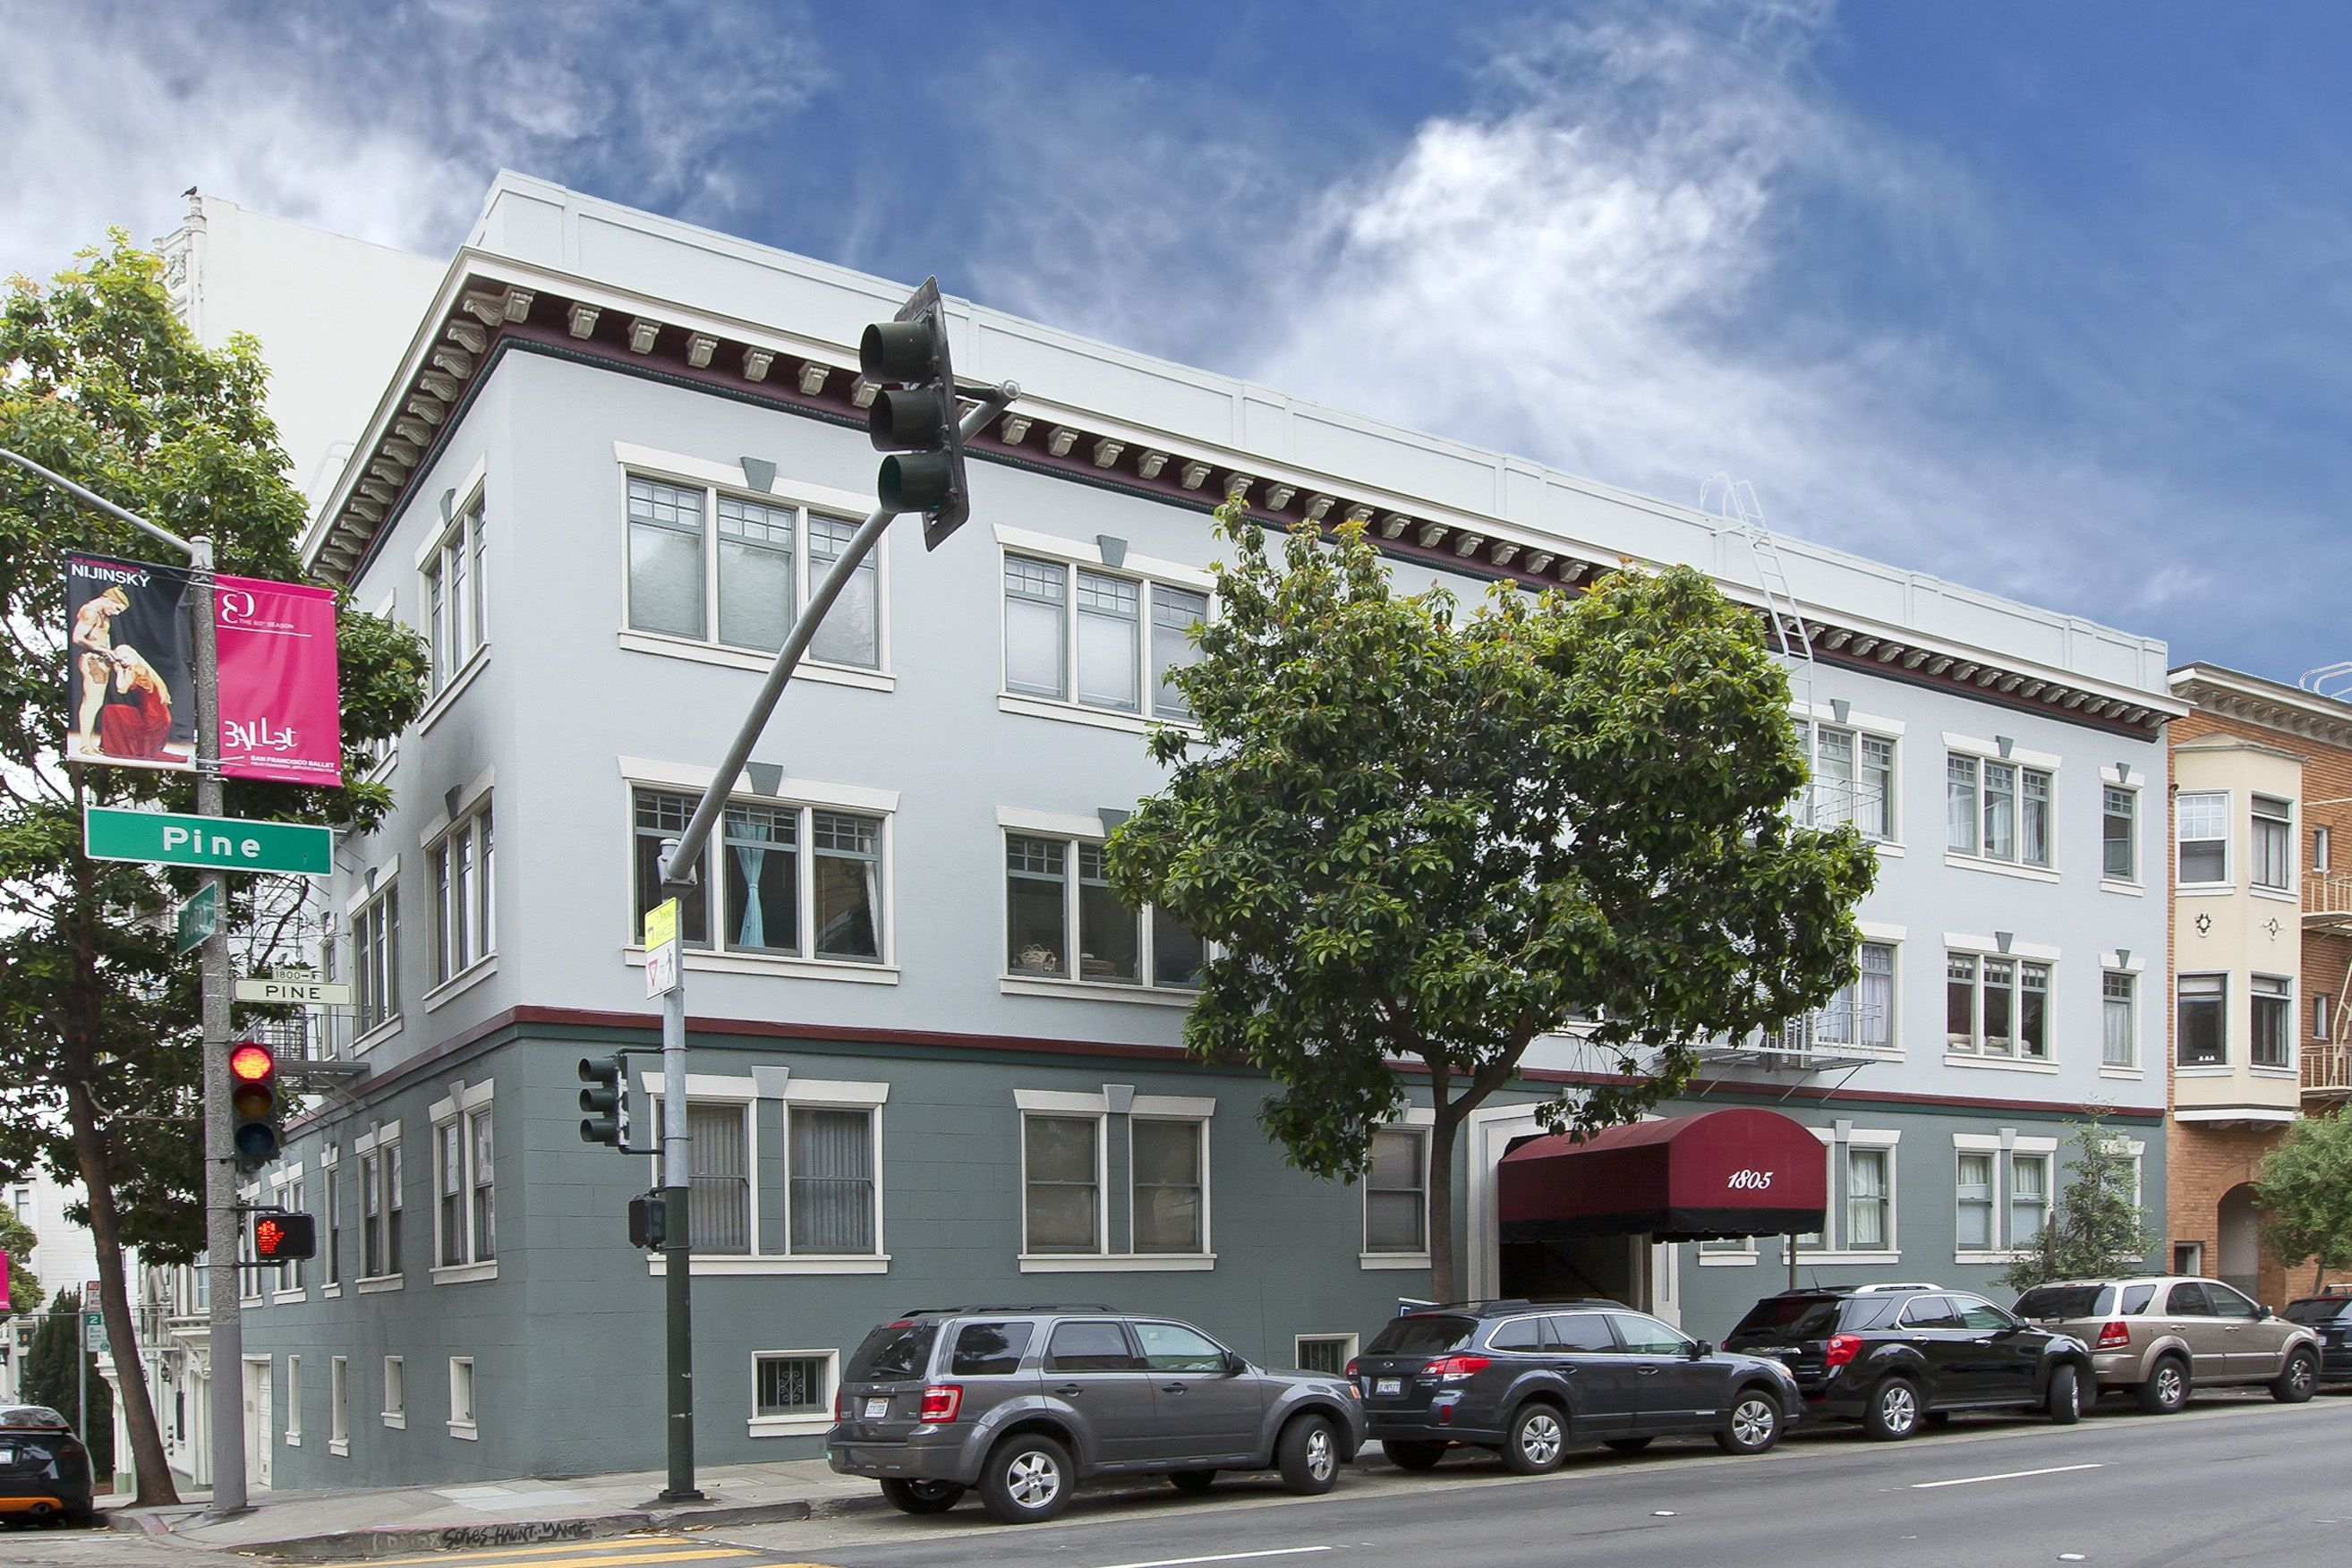 1805 Pine Street has an amazing location mere steps from so many excellent San Francisco attractions such as Fillmore Street, Hayes Valley, Civic Center and Pacific Heights.